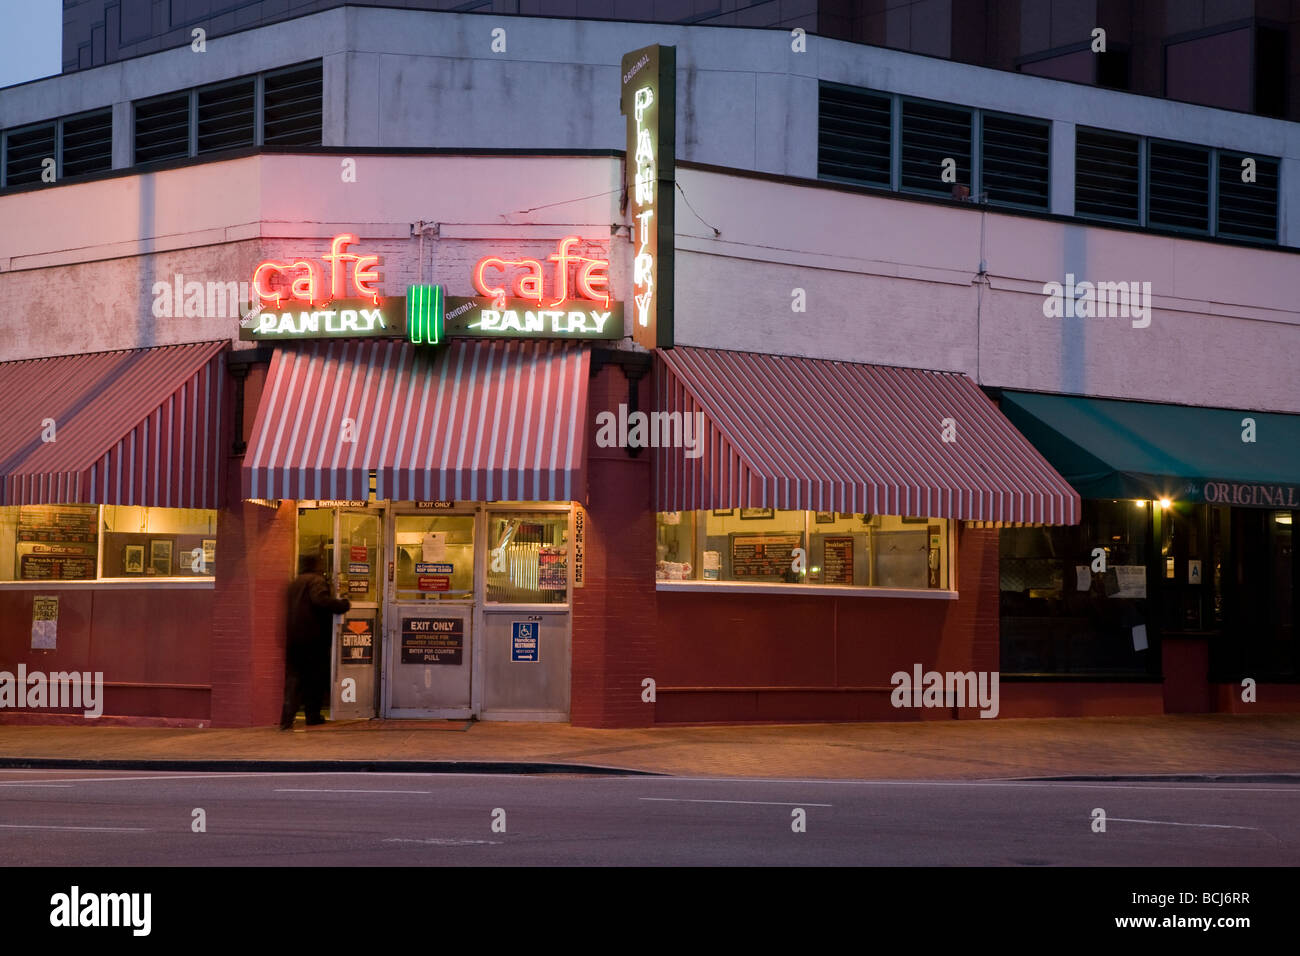 The Original Pantry Cafe with neon sign at dawn Los Angeles Stock